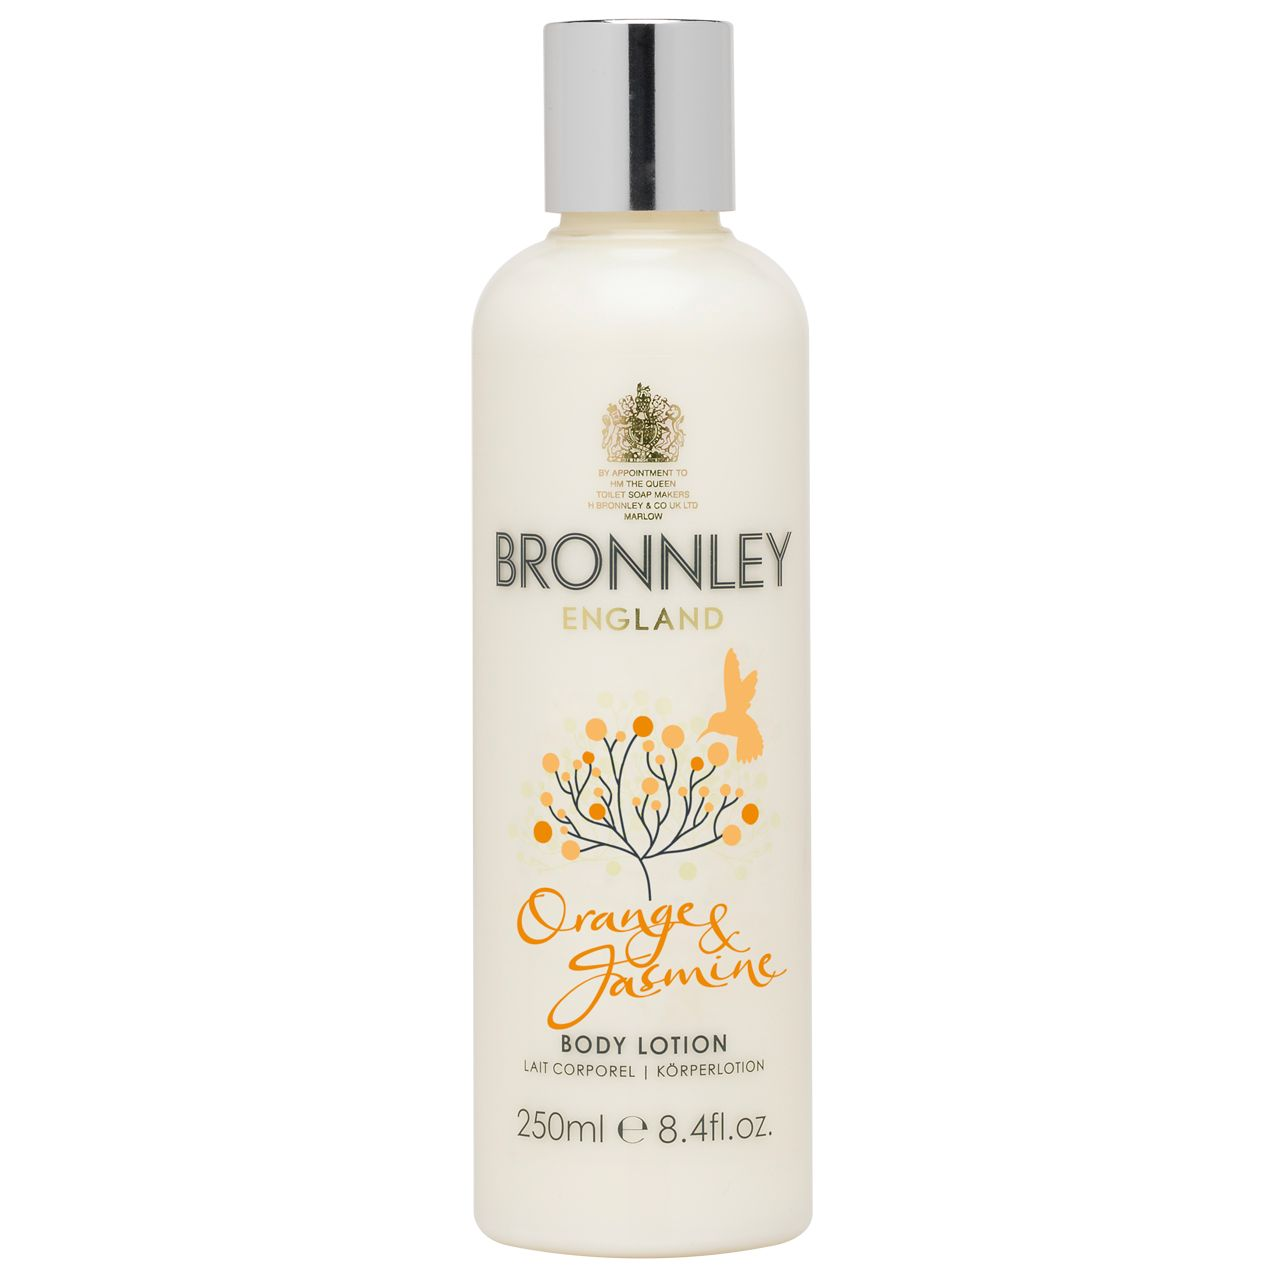 Orange and Jasmine 250ml Body Lotion